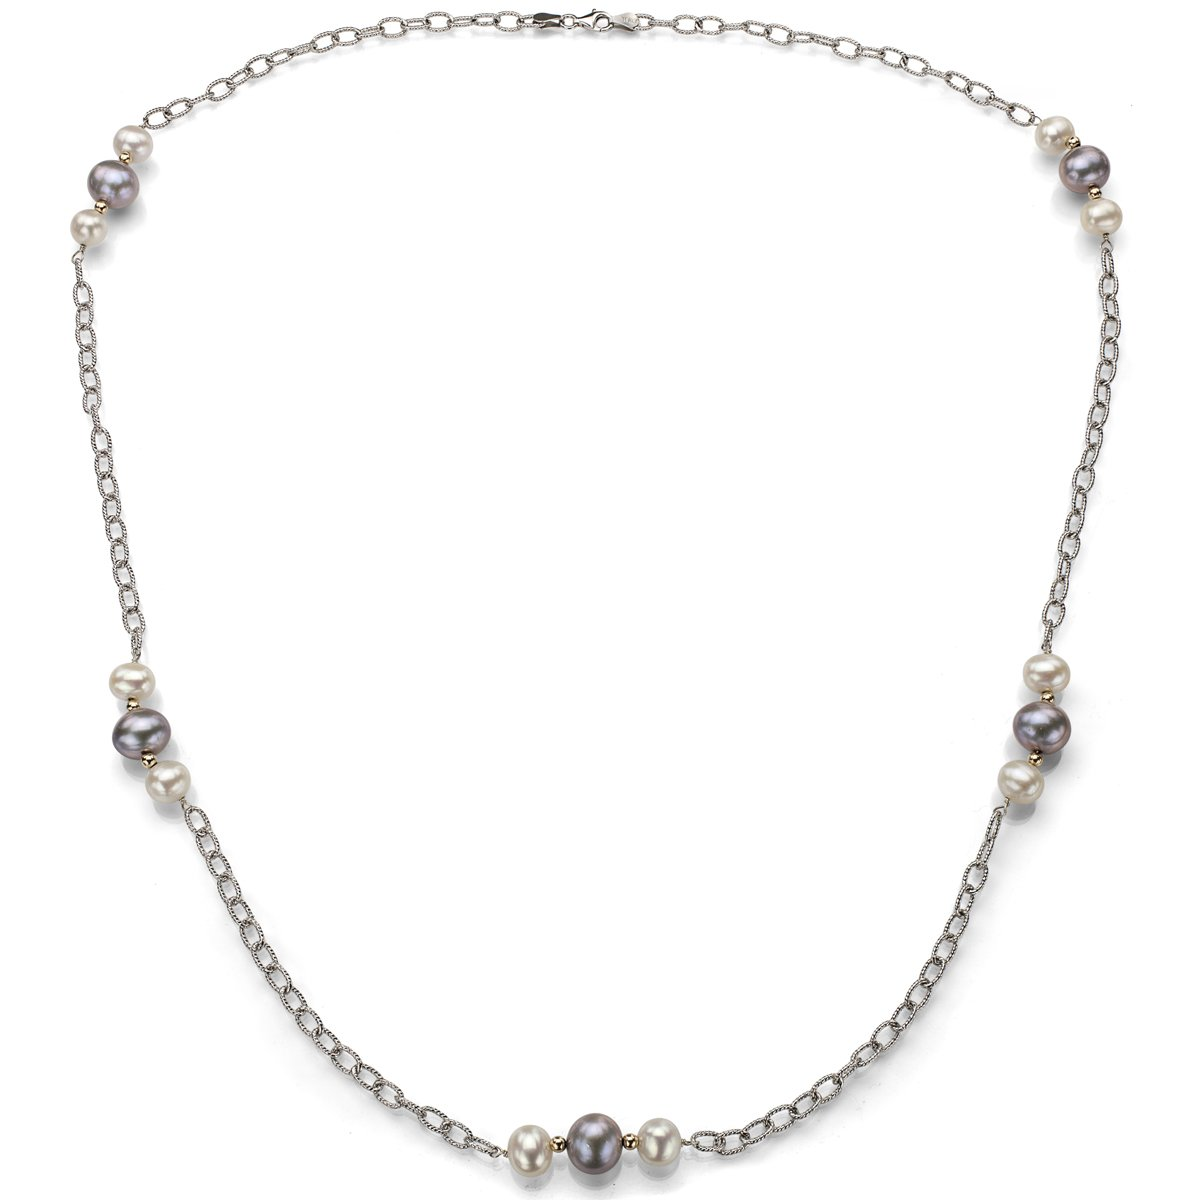 La Regis Jewelry Sterling Silver 8-8.5mm White and 10-10.5mm Dyed-grey Freshwater Cultured Pearl Necklace, 30''